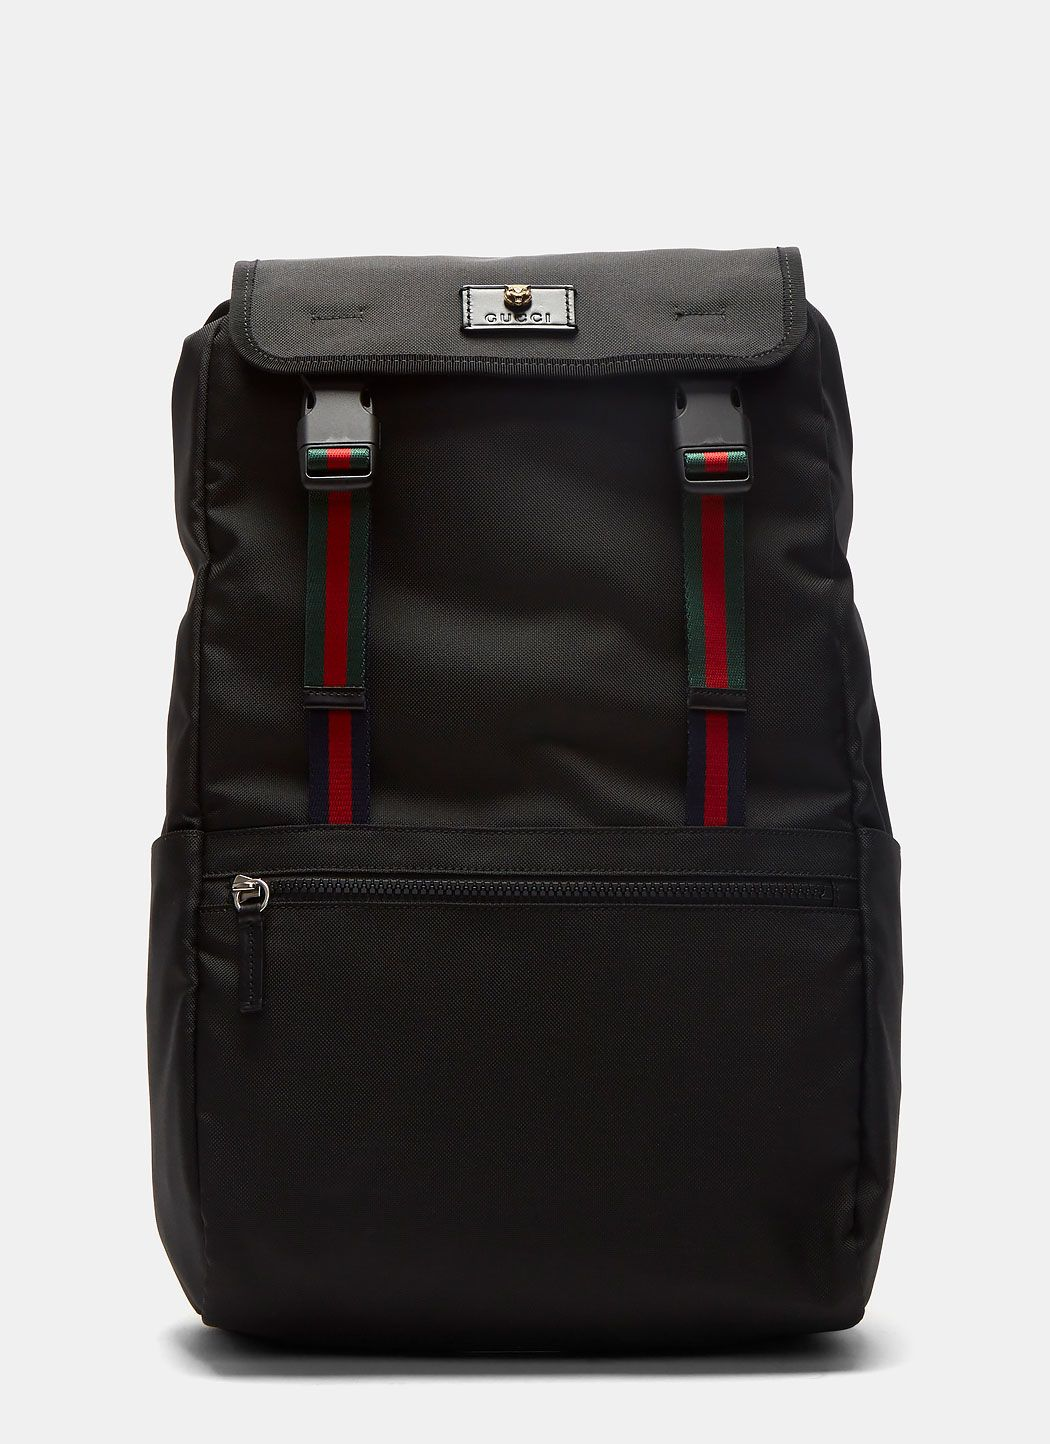 ea91bad67339 GUCCI Men S Zaino Technical Canvas Backpack.  gucci  bags  canvas  lining   polyester  nylon  backpacks  cotton